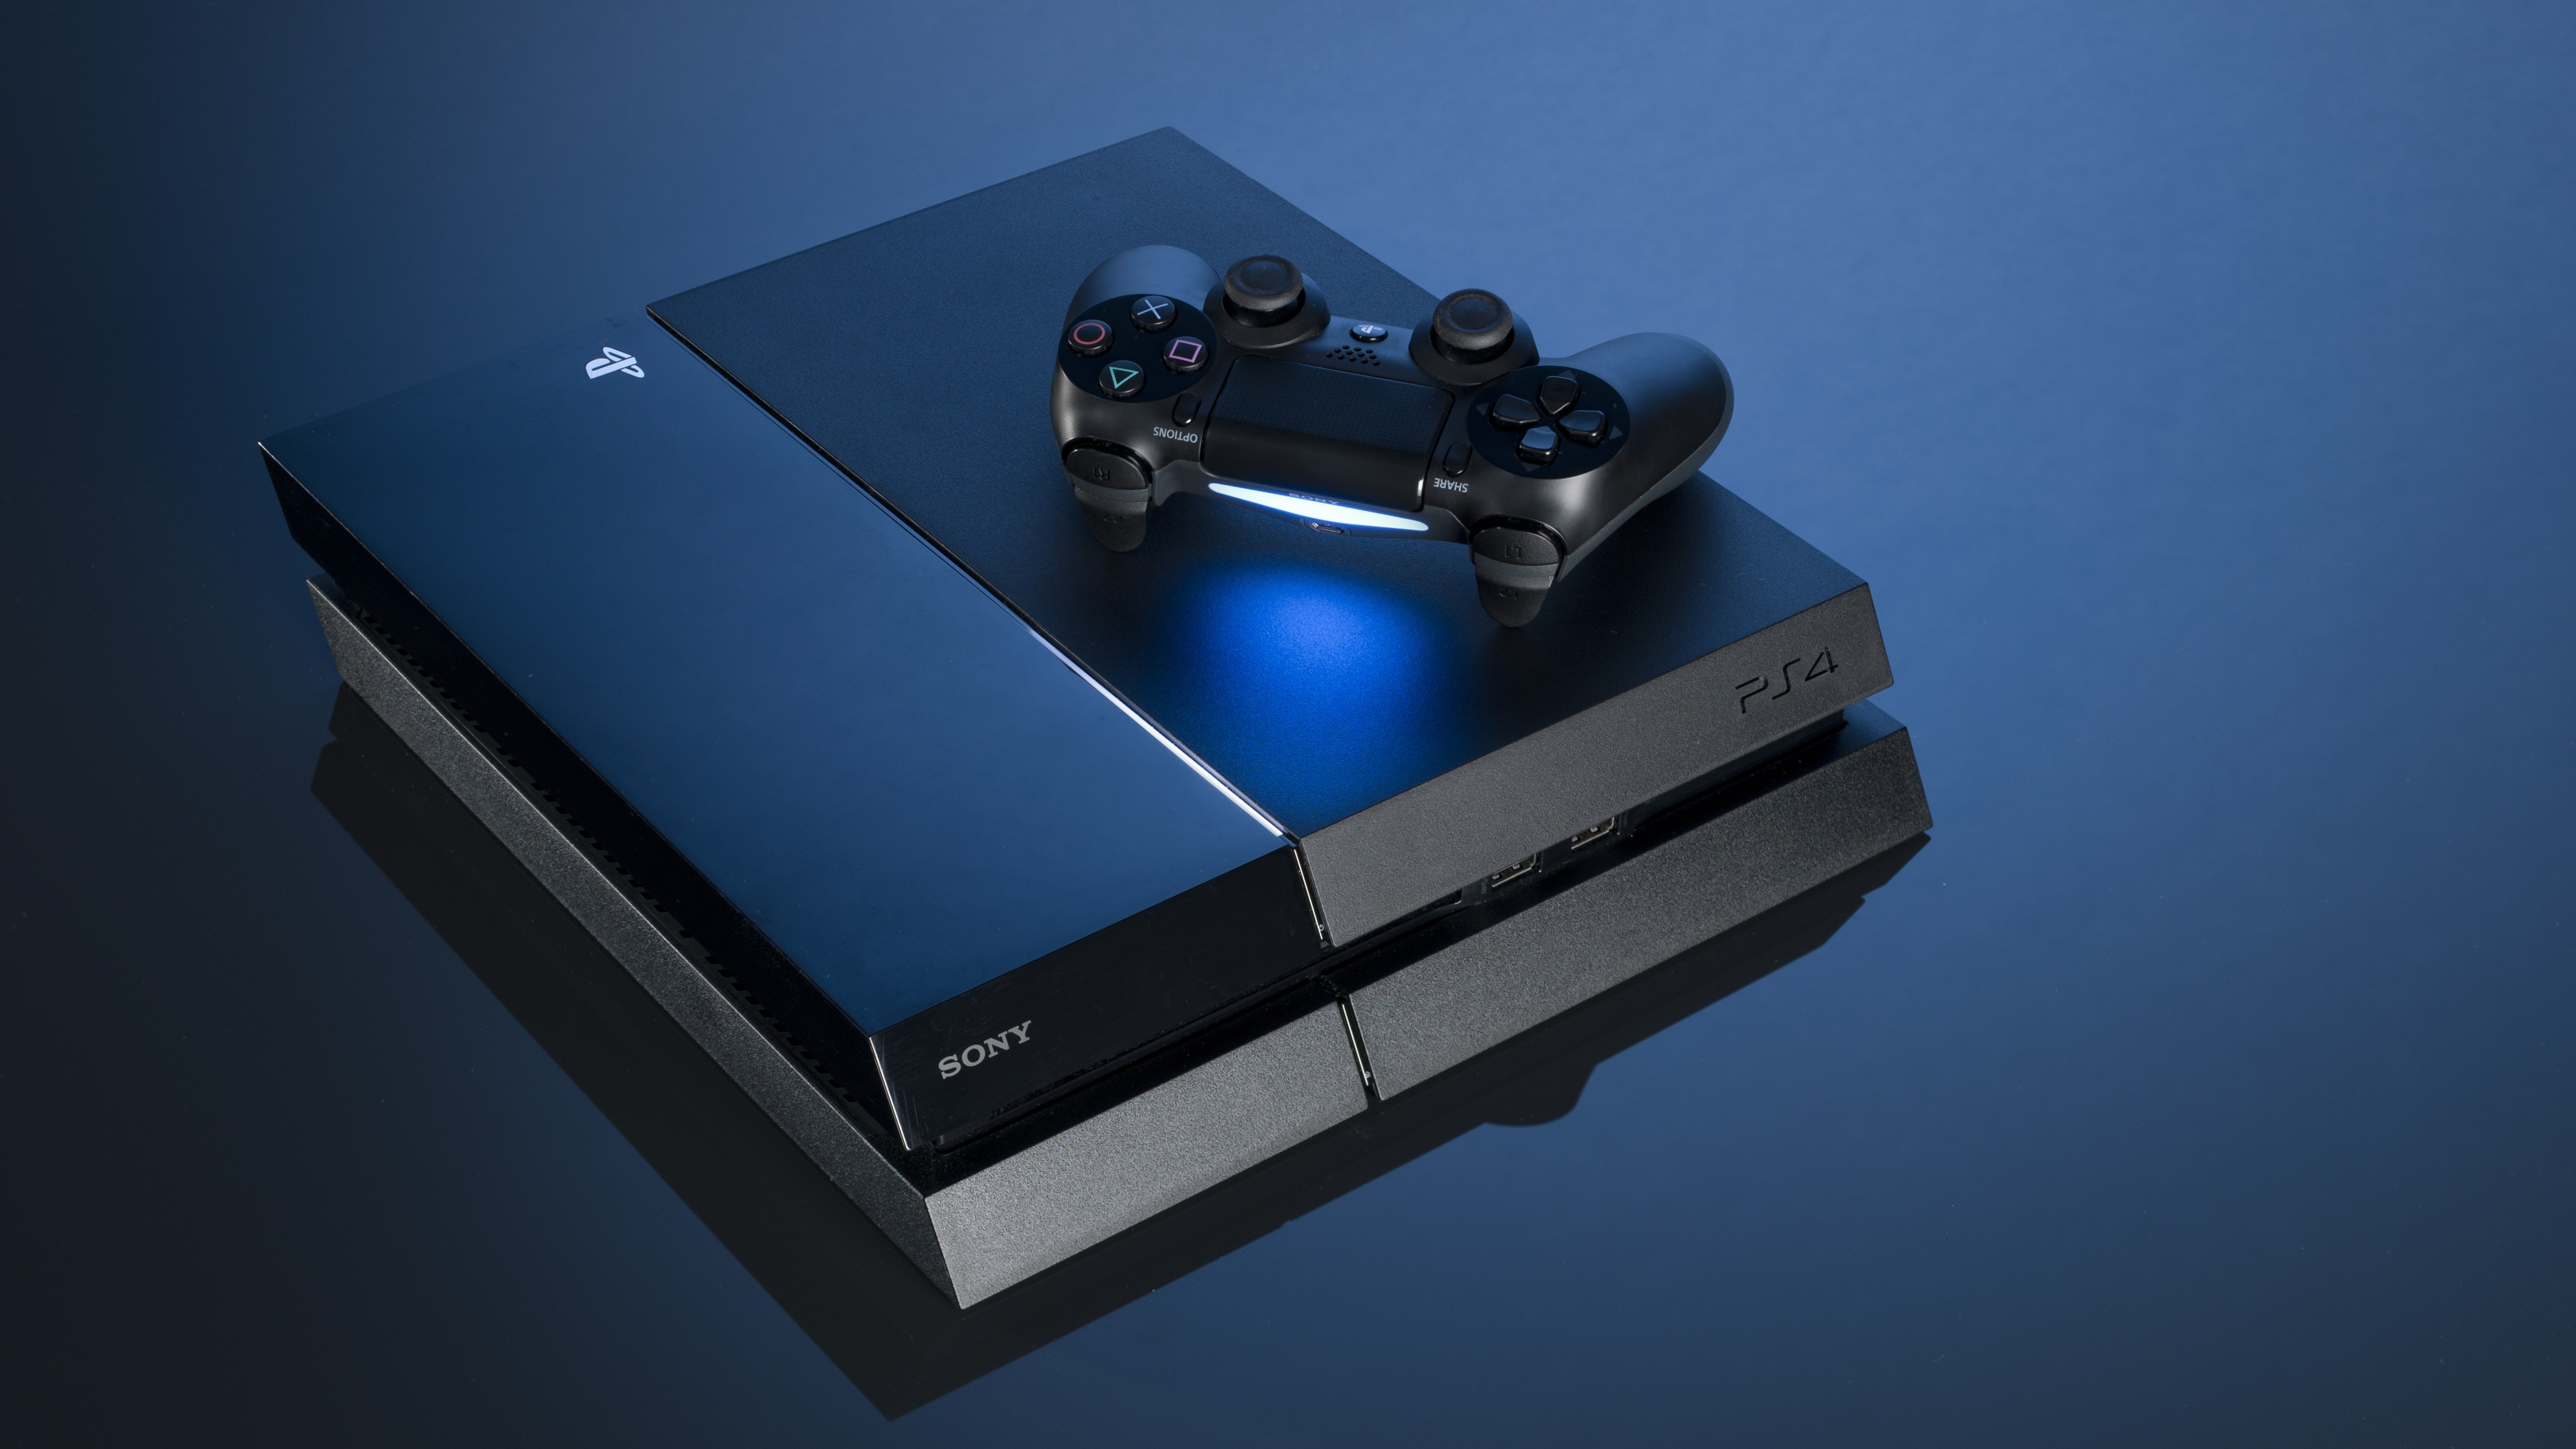 PlayStation 4 users can now change their PSN name | TechRadar